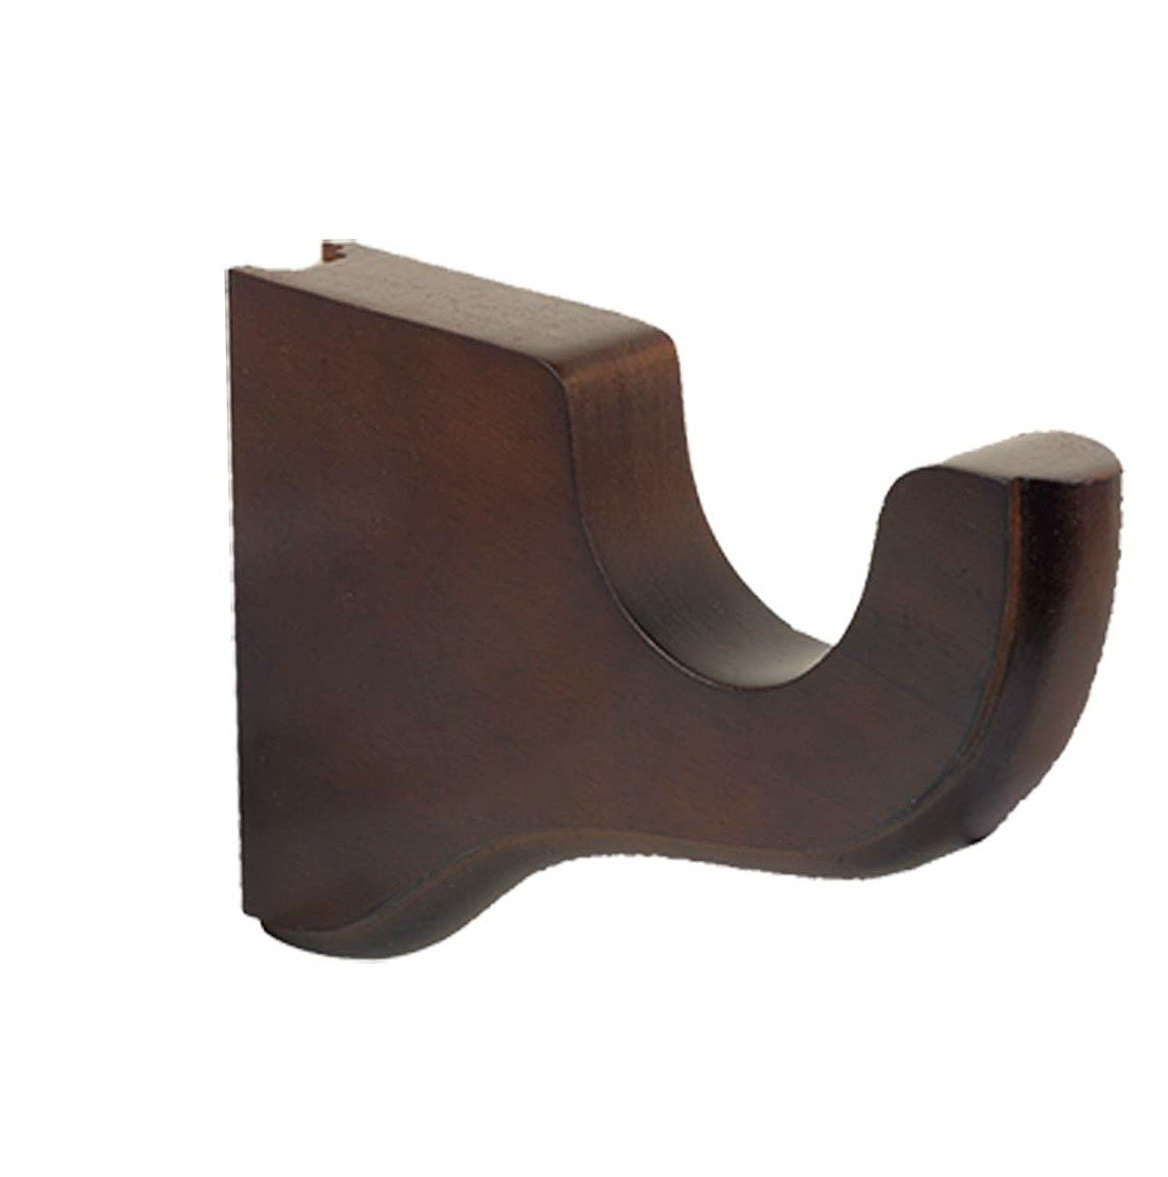 Wooden Curtain Rod Brackets